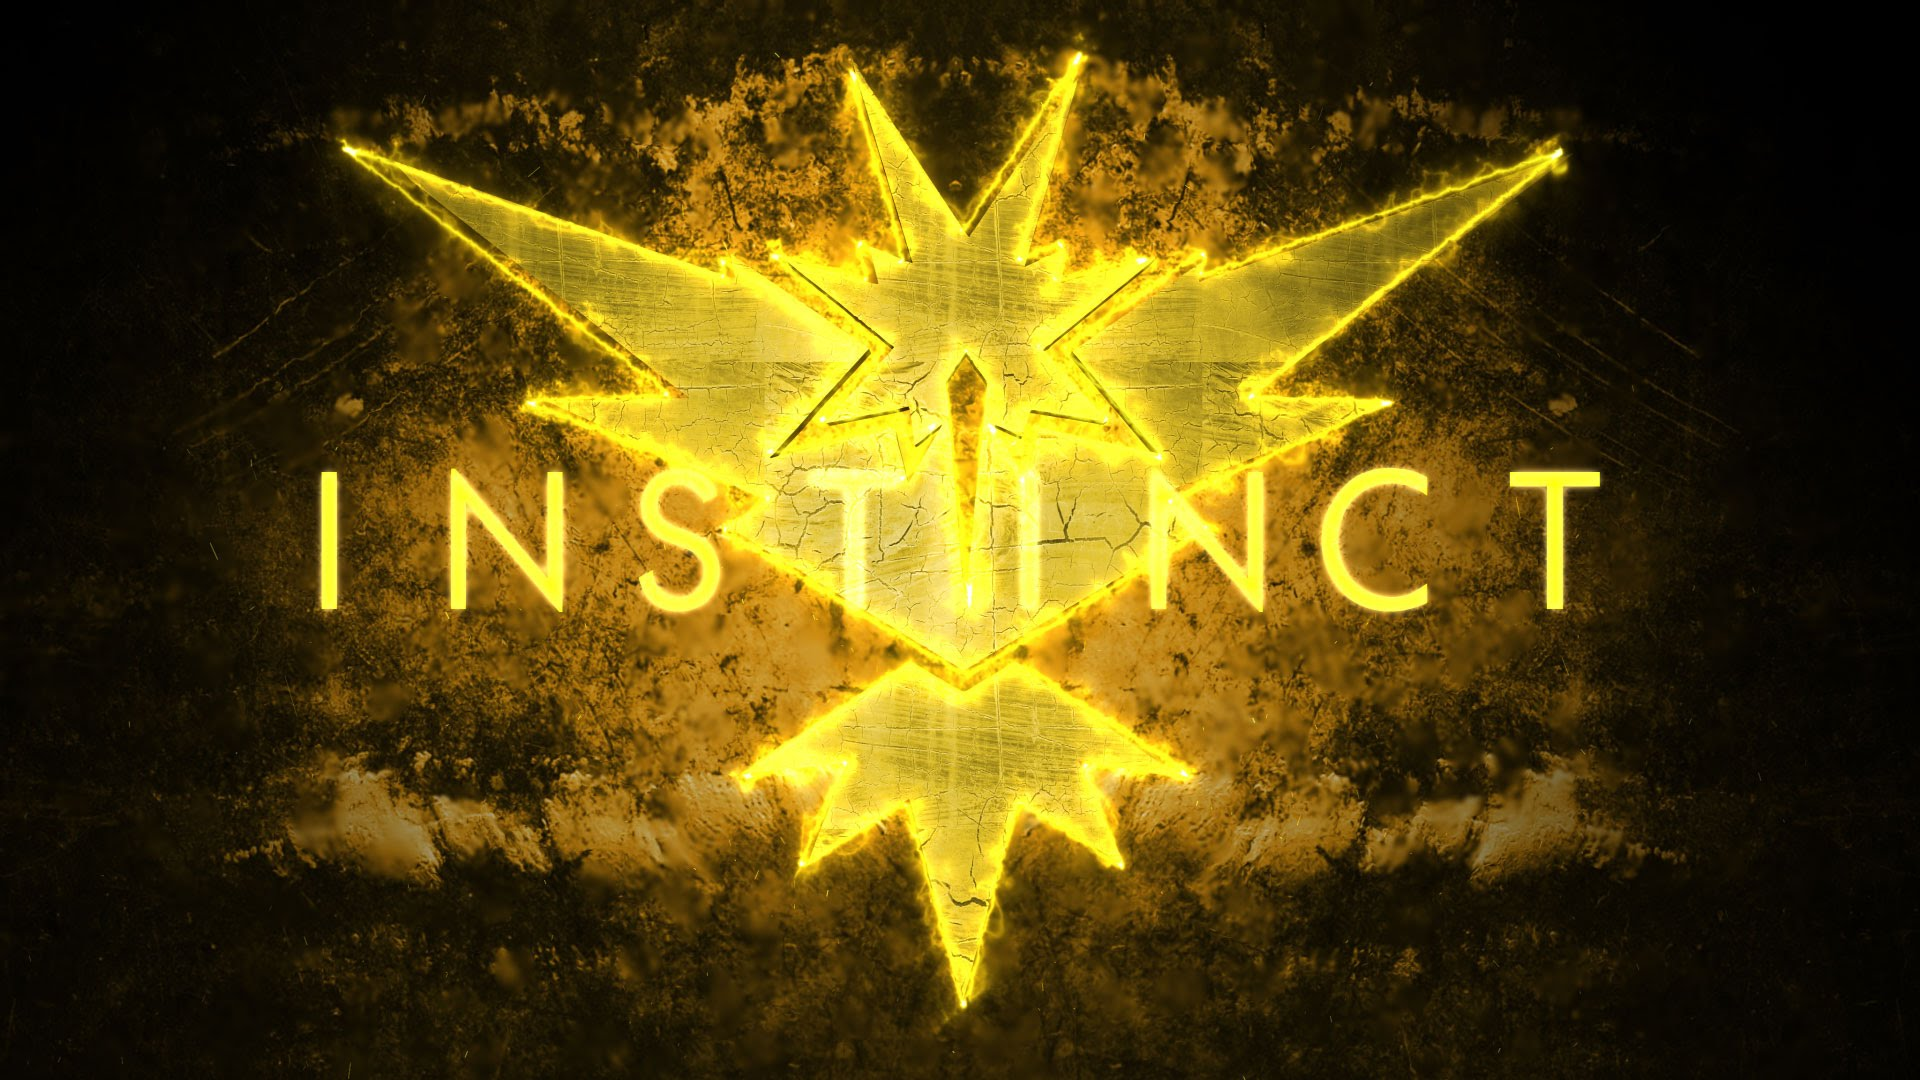 Instinct Wallpapers Video Game Hq Instinct Pictures 4k